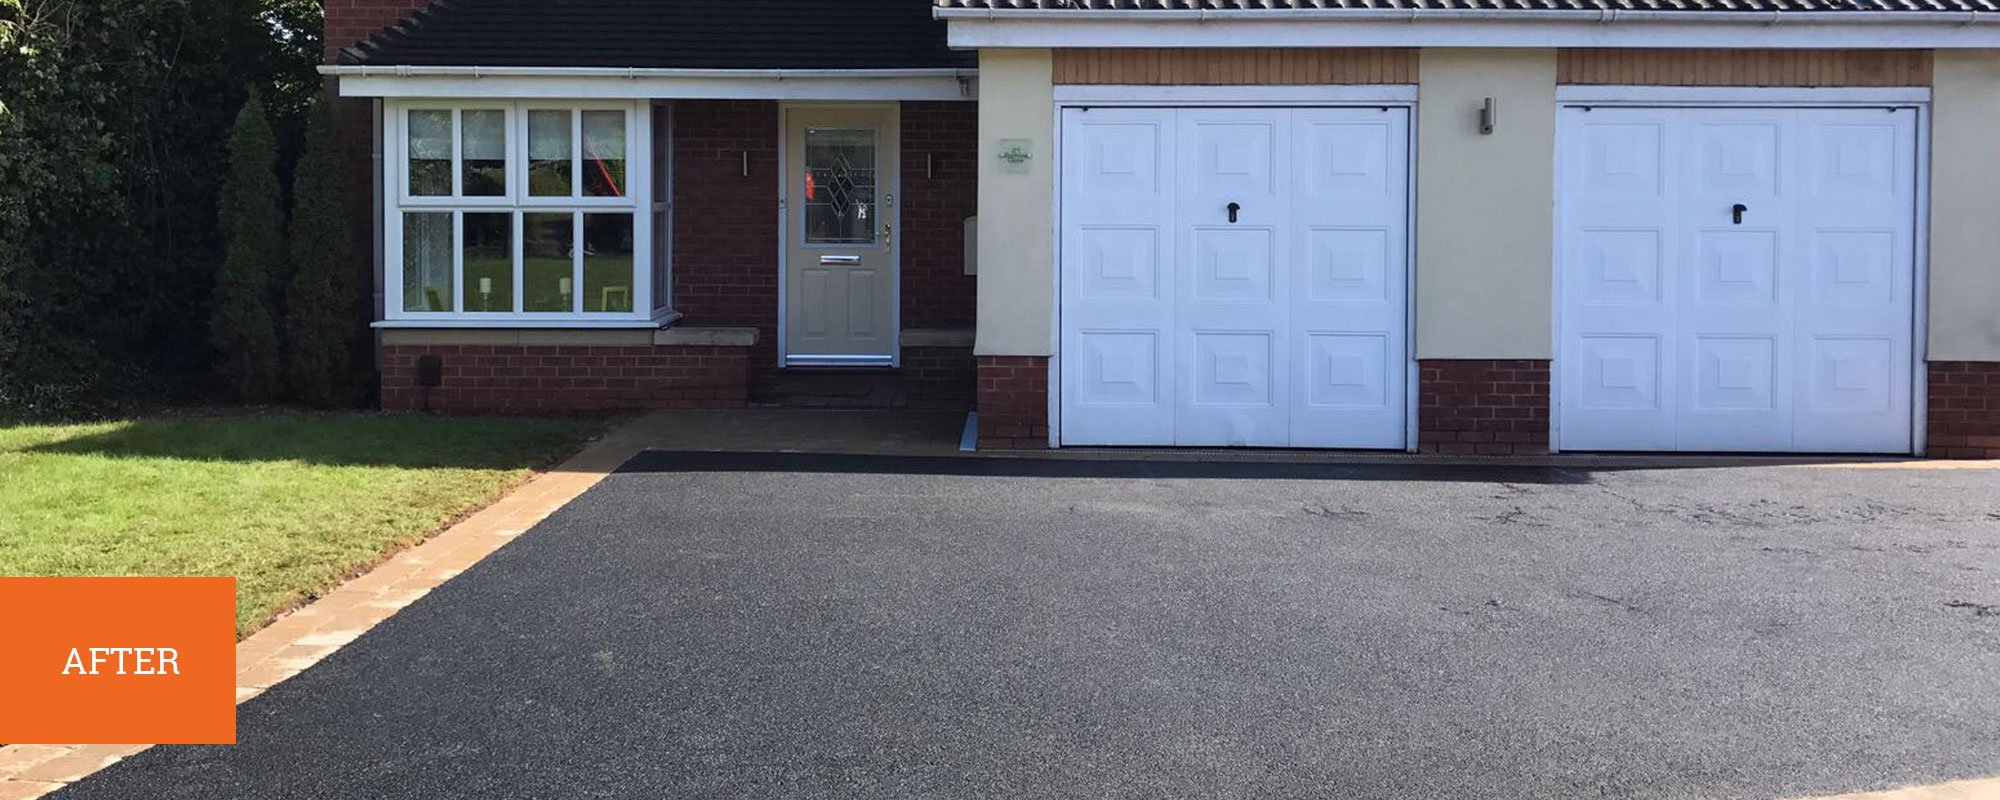 PageLines-sutton-coldfield-driveway.jpg